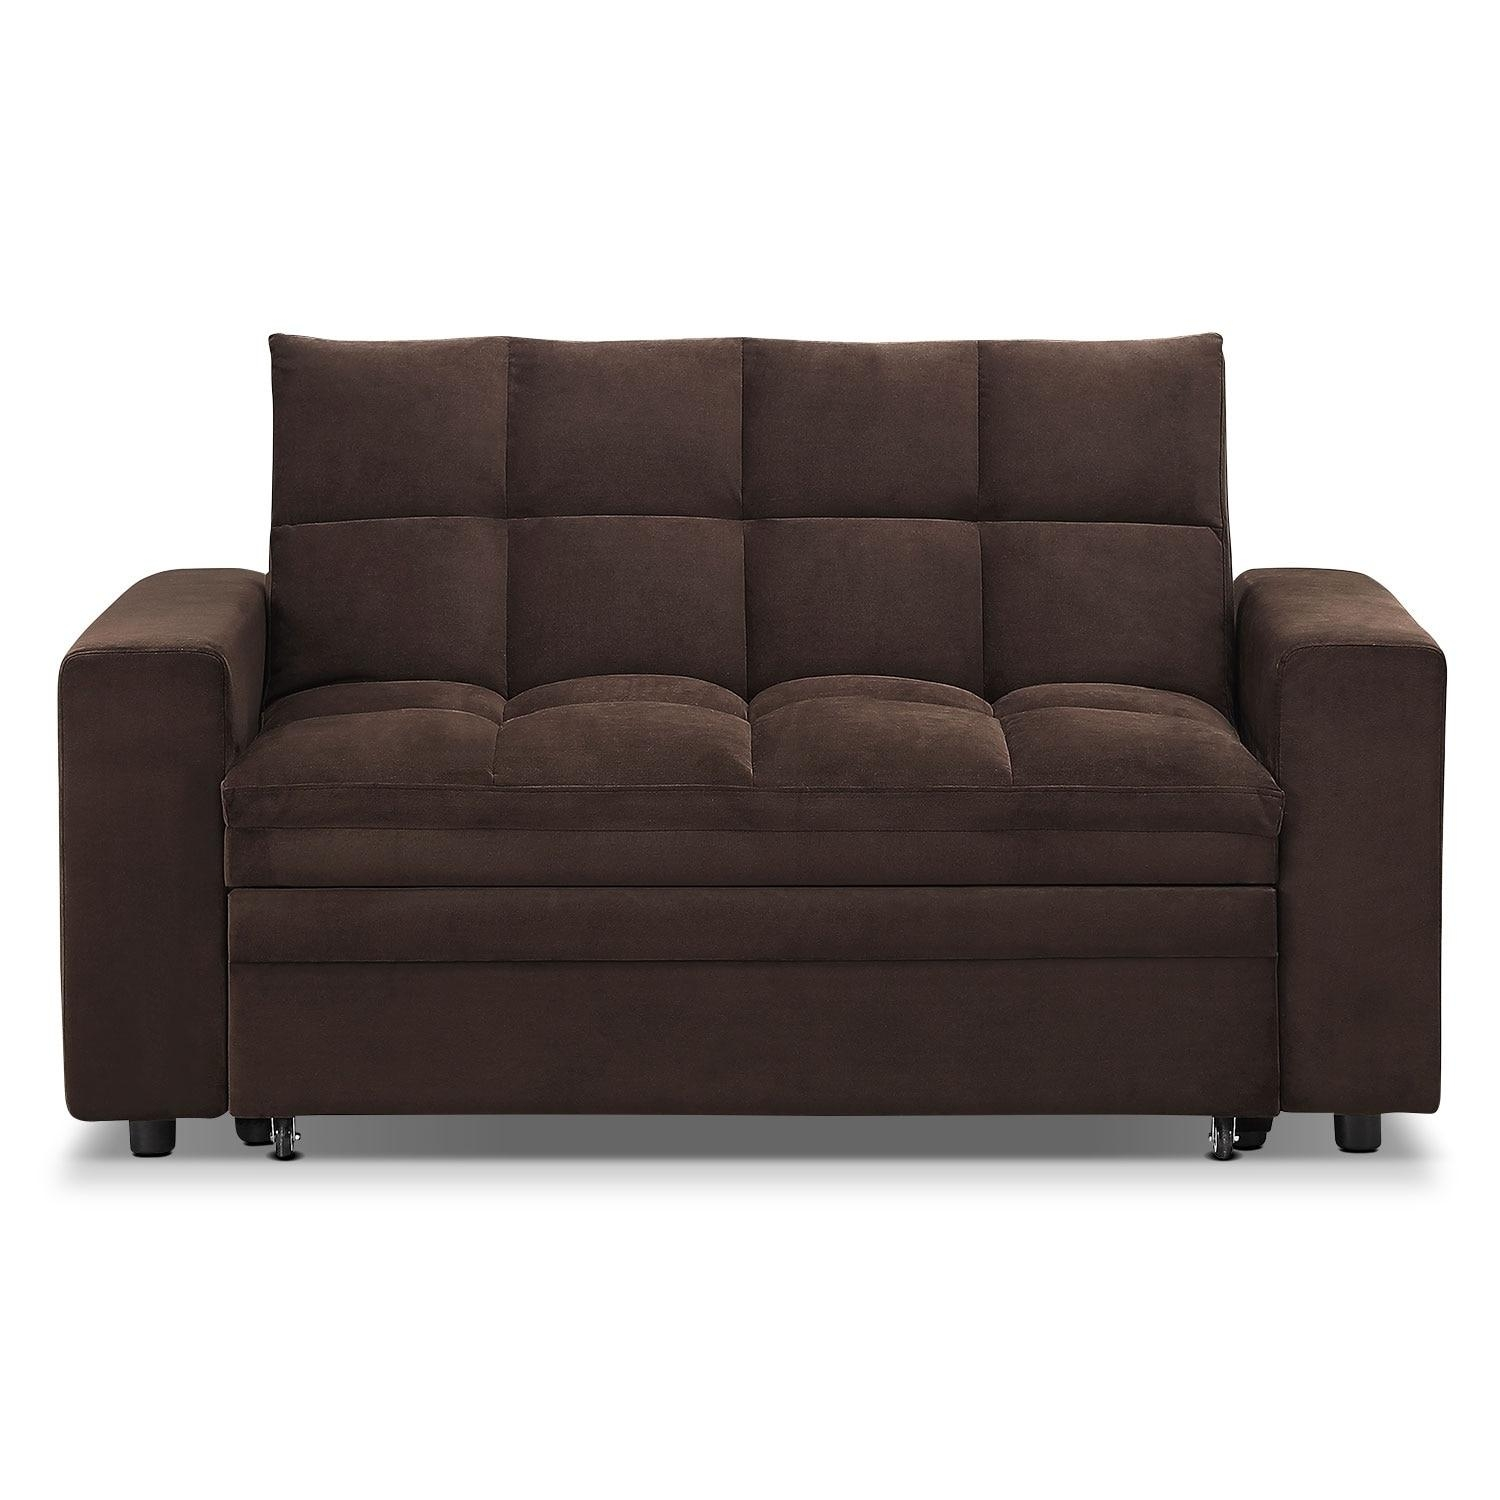 storage sectional sofa bed clearance sofas manchester 20 photos chaise beds with ideas